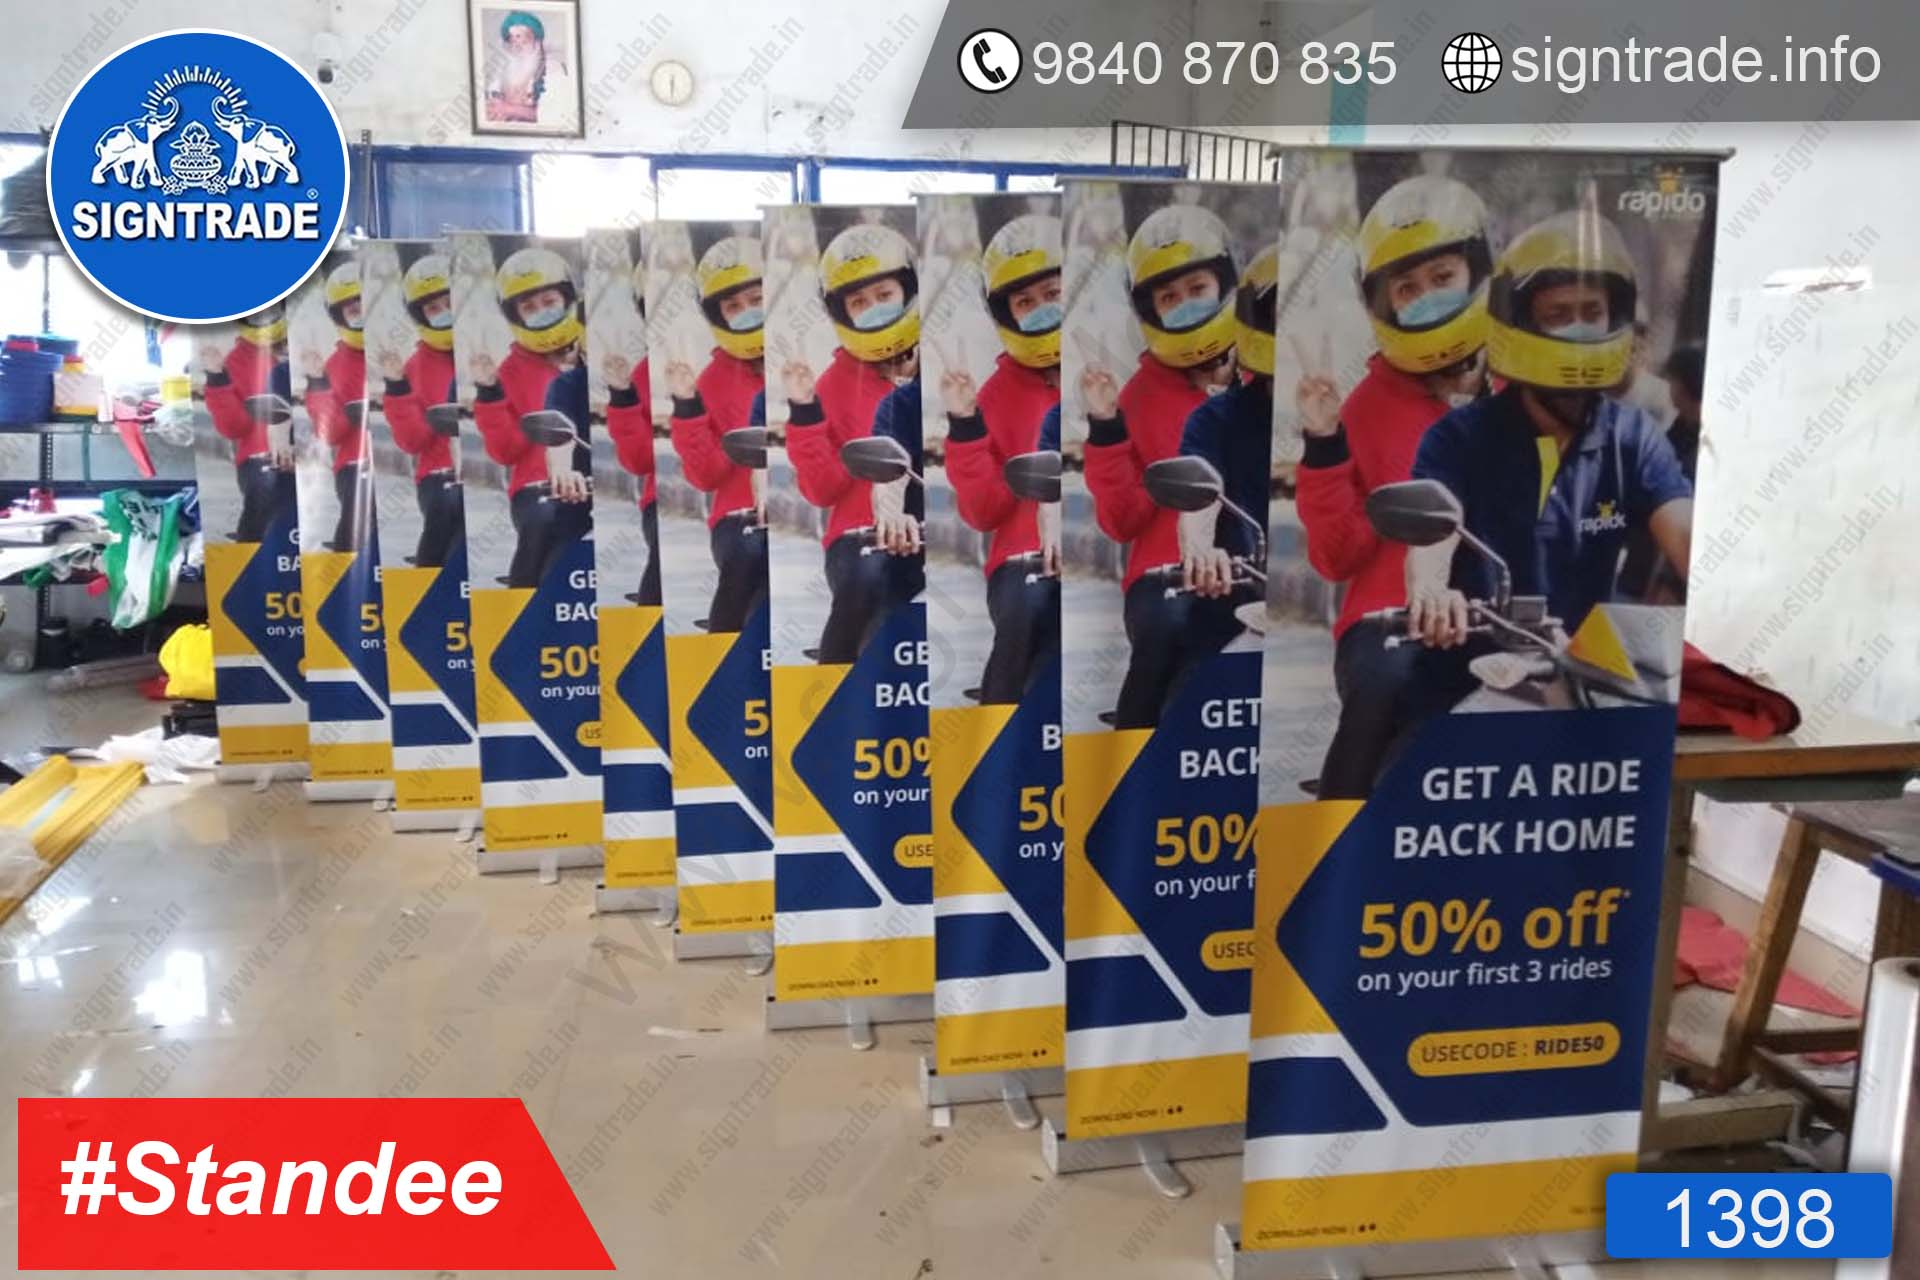 Bike Taxi - 1398, Retractable Banner, Roll Up Banner Stand, Banner Stand, Roll Up Banner, Standee, Promotional Standee, Promotional Roll Up Standee, Promo Standee